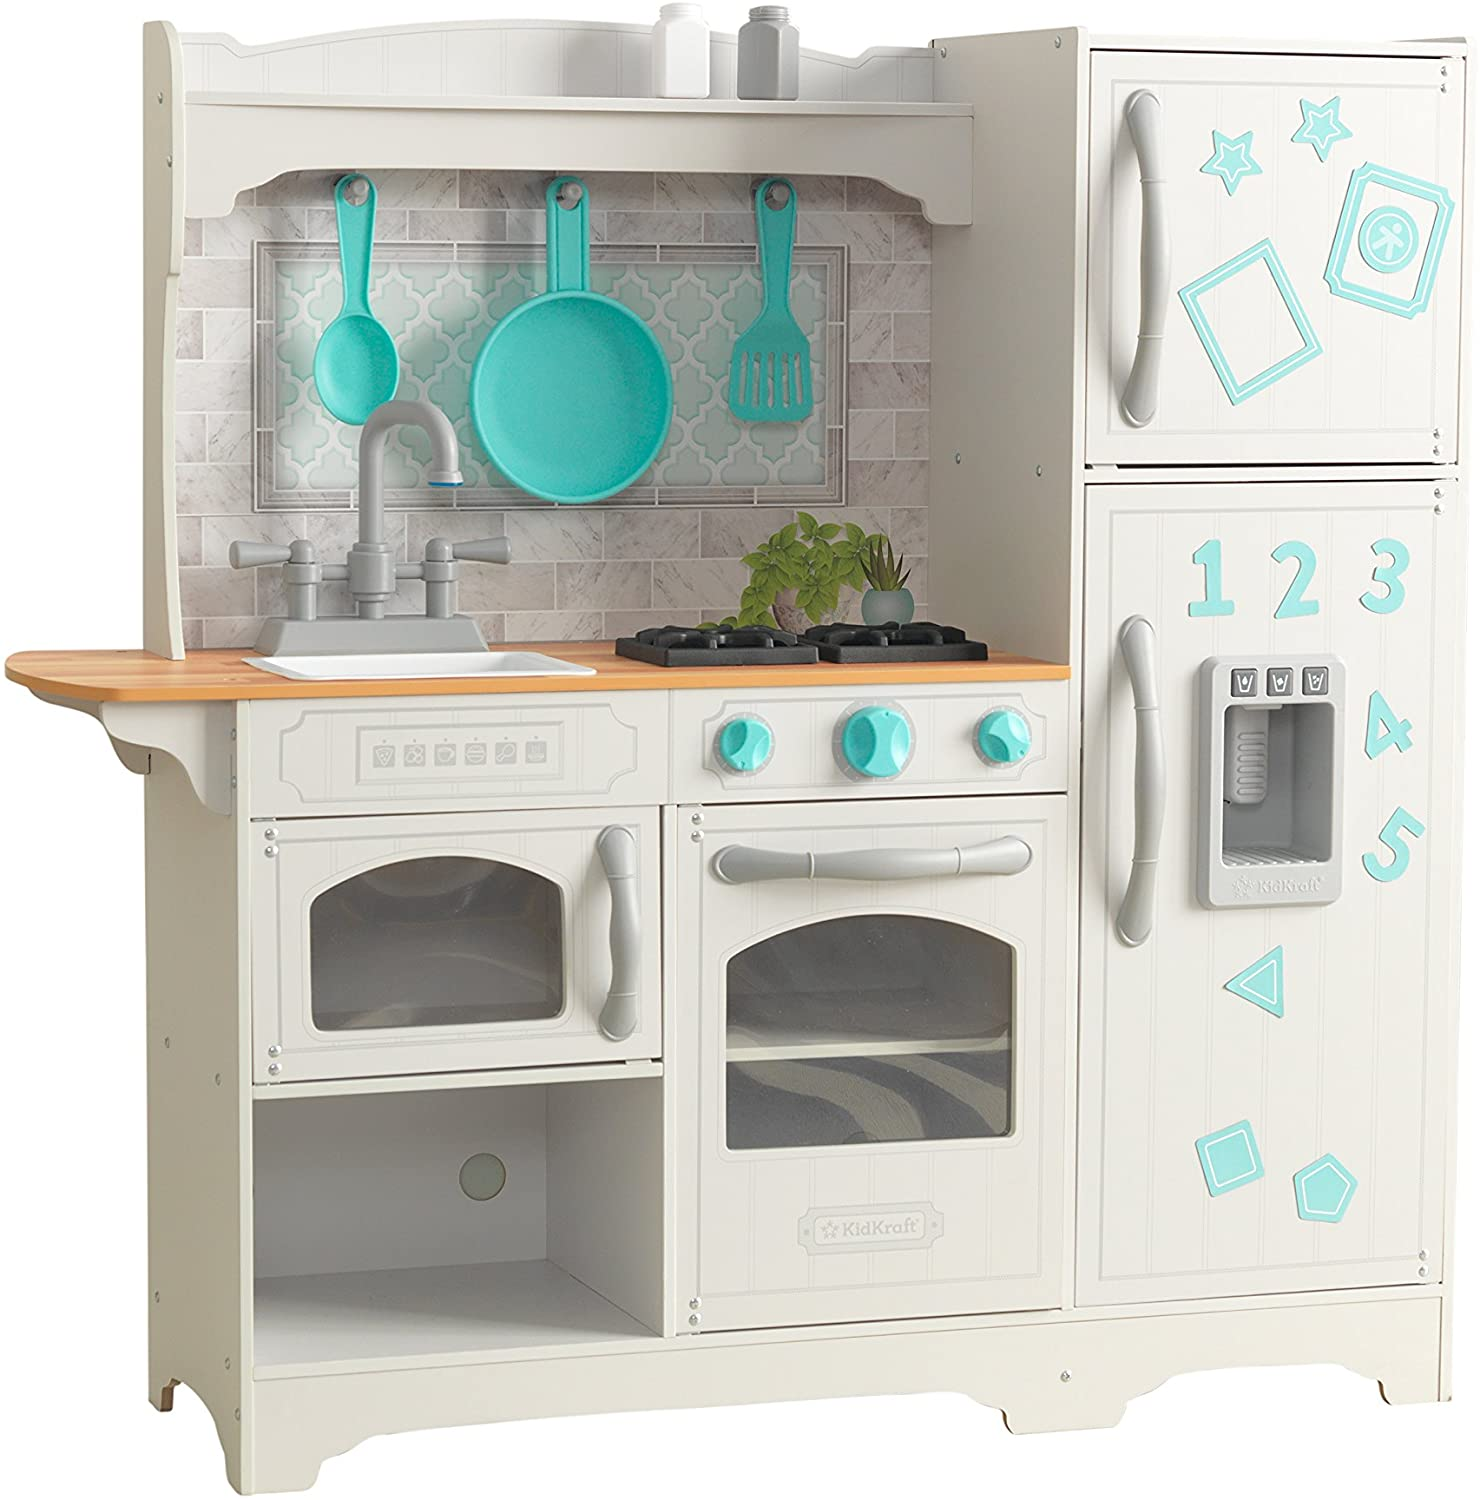 KidKraft 53424 Countryside Play Kitchen Play Wooden Pretend Play Toy Kitchen for Kids with Ice Maker and Role Play Accessories Included - EZ Kraft Assembly